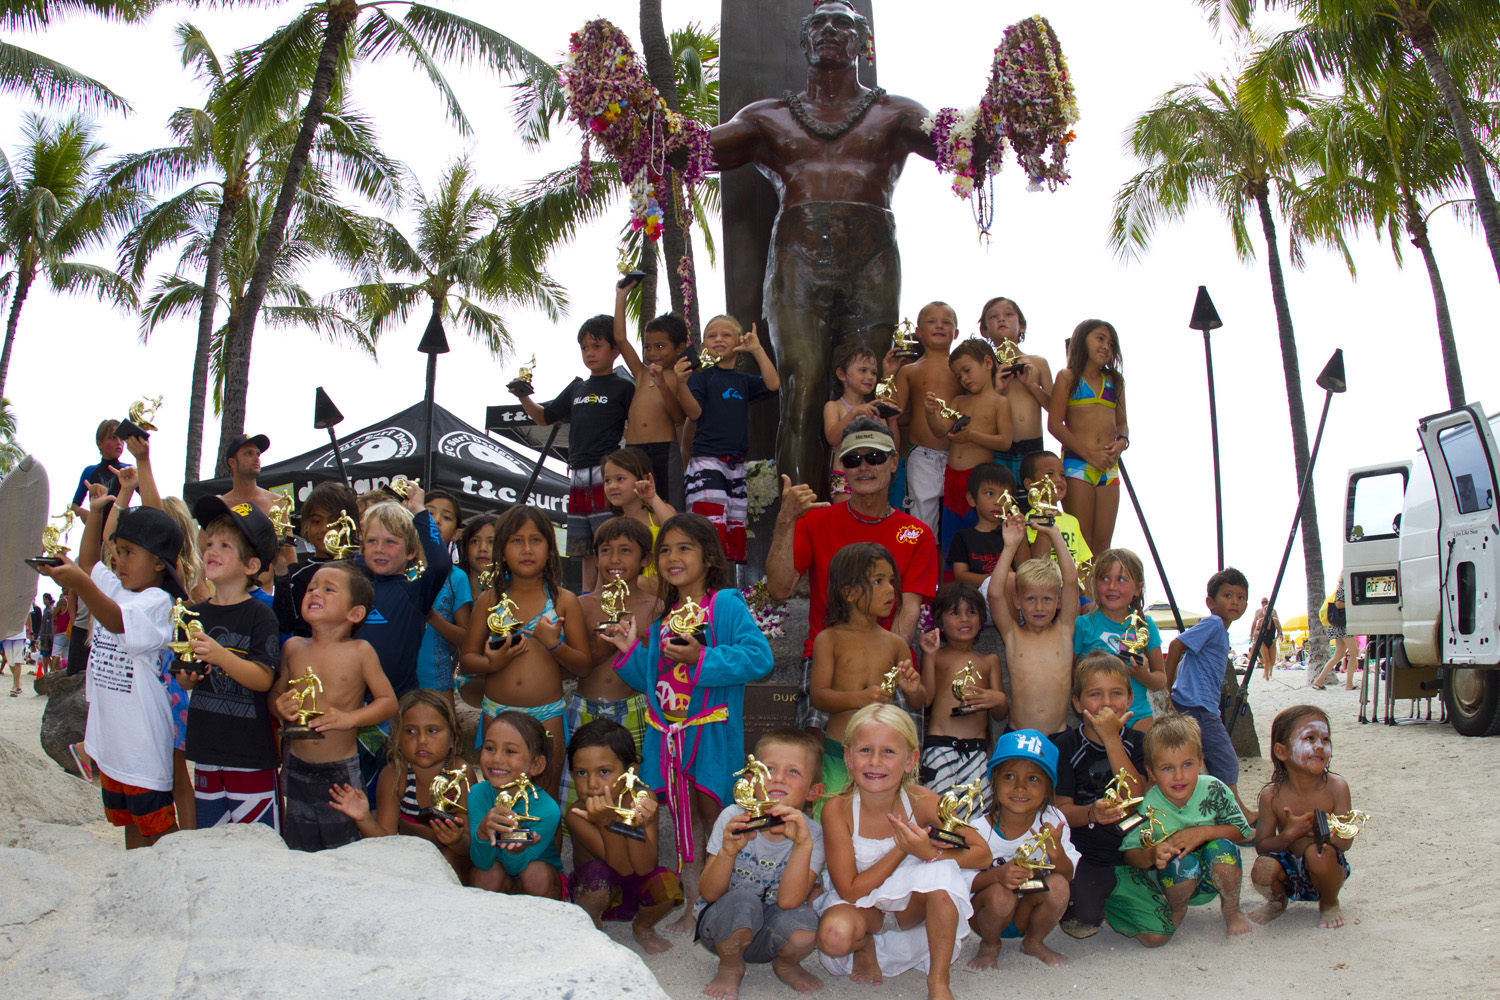 Contestants gather at the Duke statue for the 16th annual Town & Country Grom Contest. Photo: Manulele